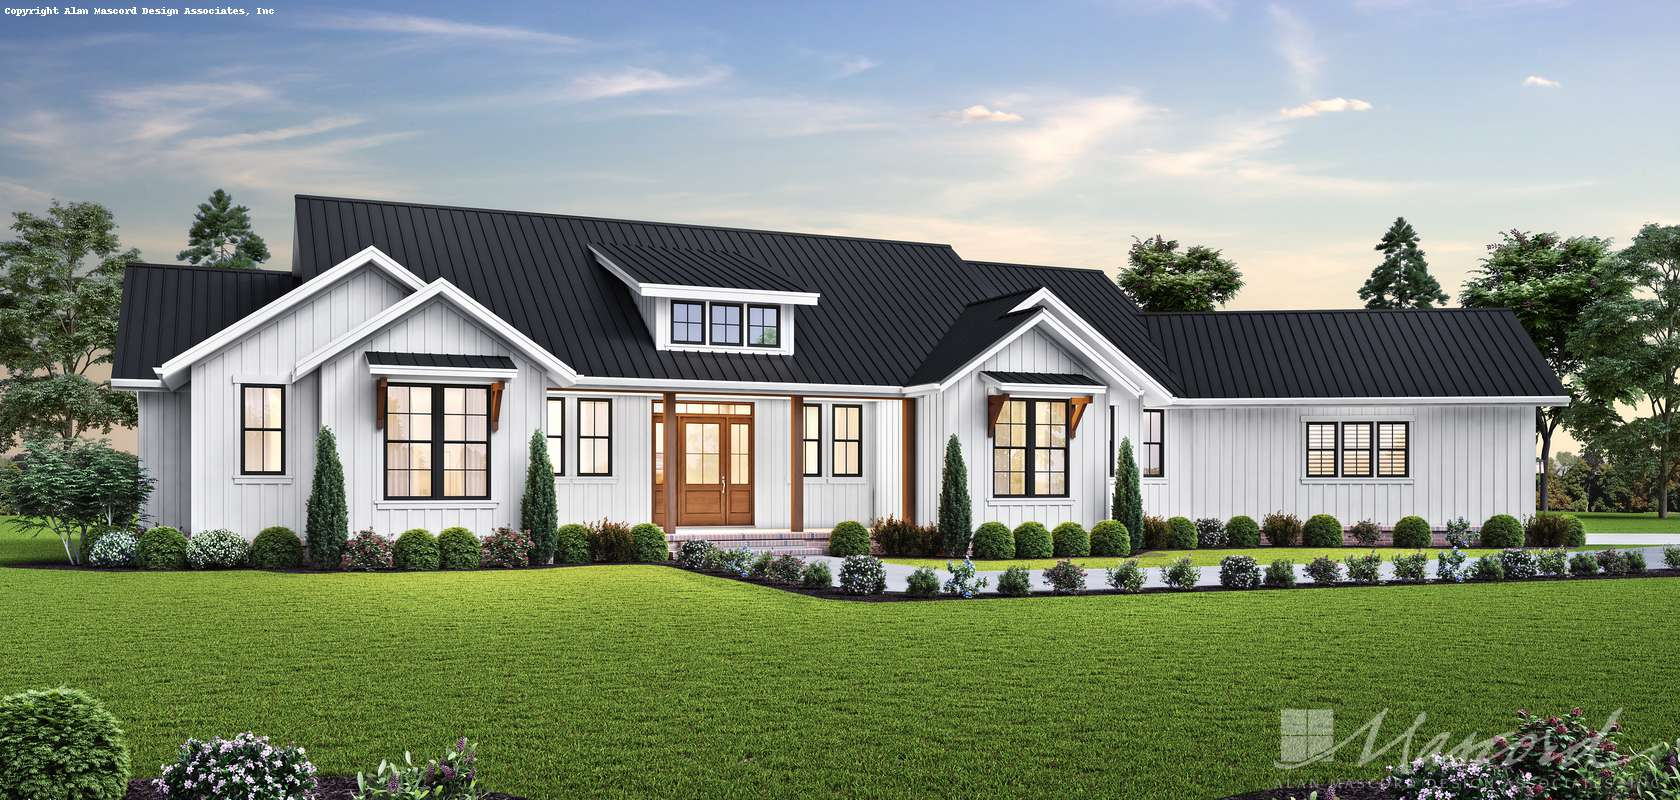 Mascord House Plan 1250C: The Lakeville